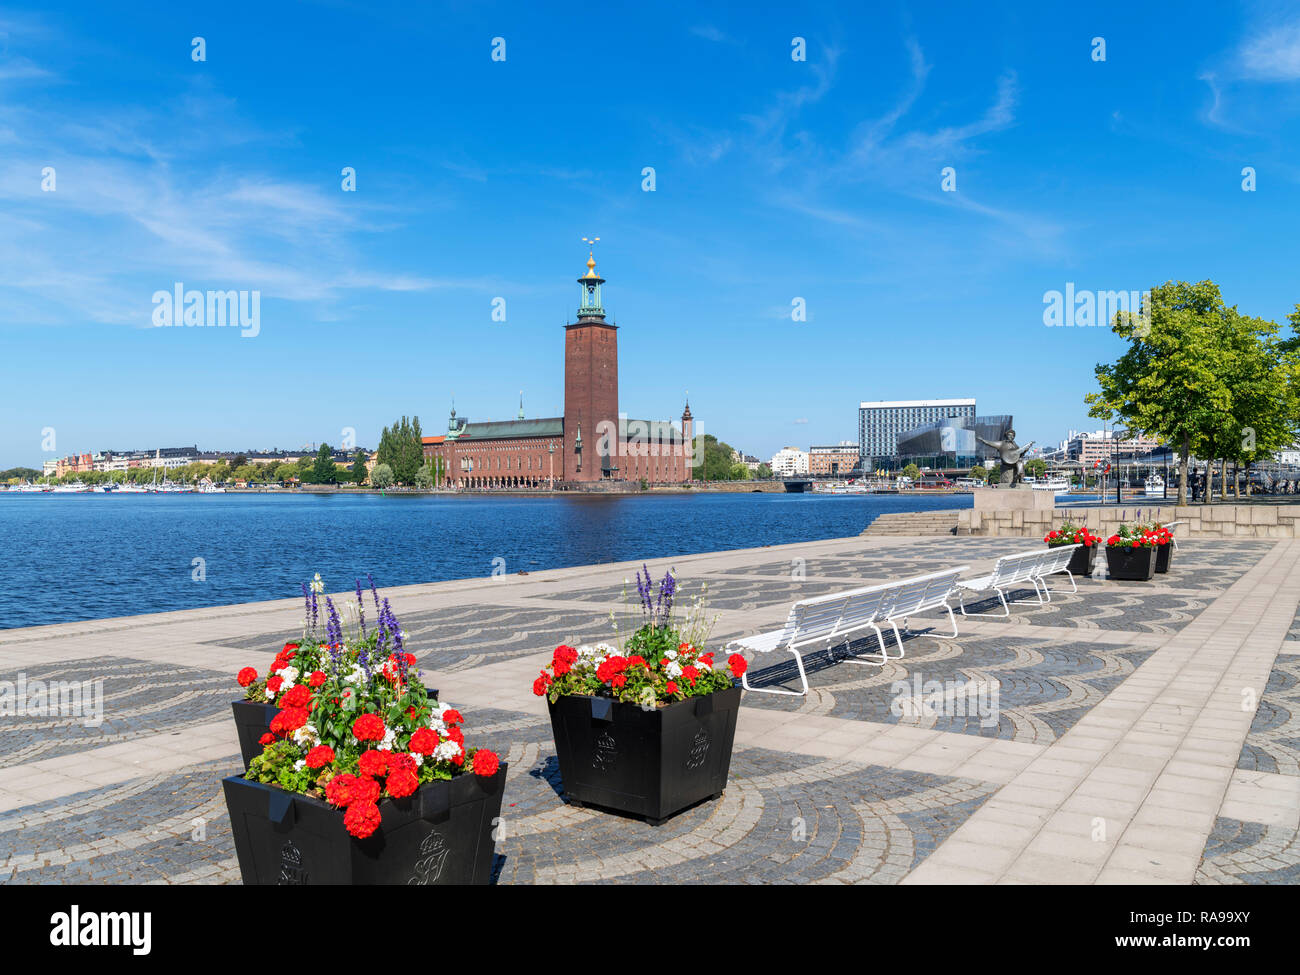 Stockholm City Hall (Stadshuset) on Kungsholmen from Riddarholmen, Stockholm, Sweden - Stock Image